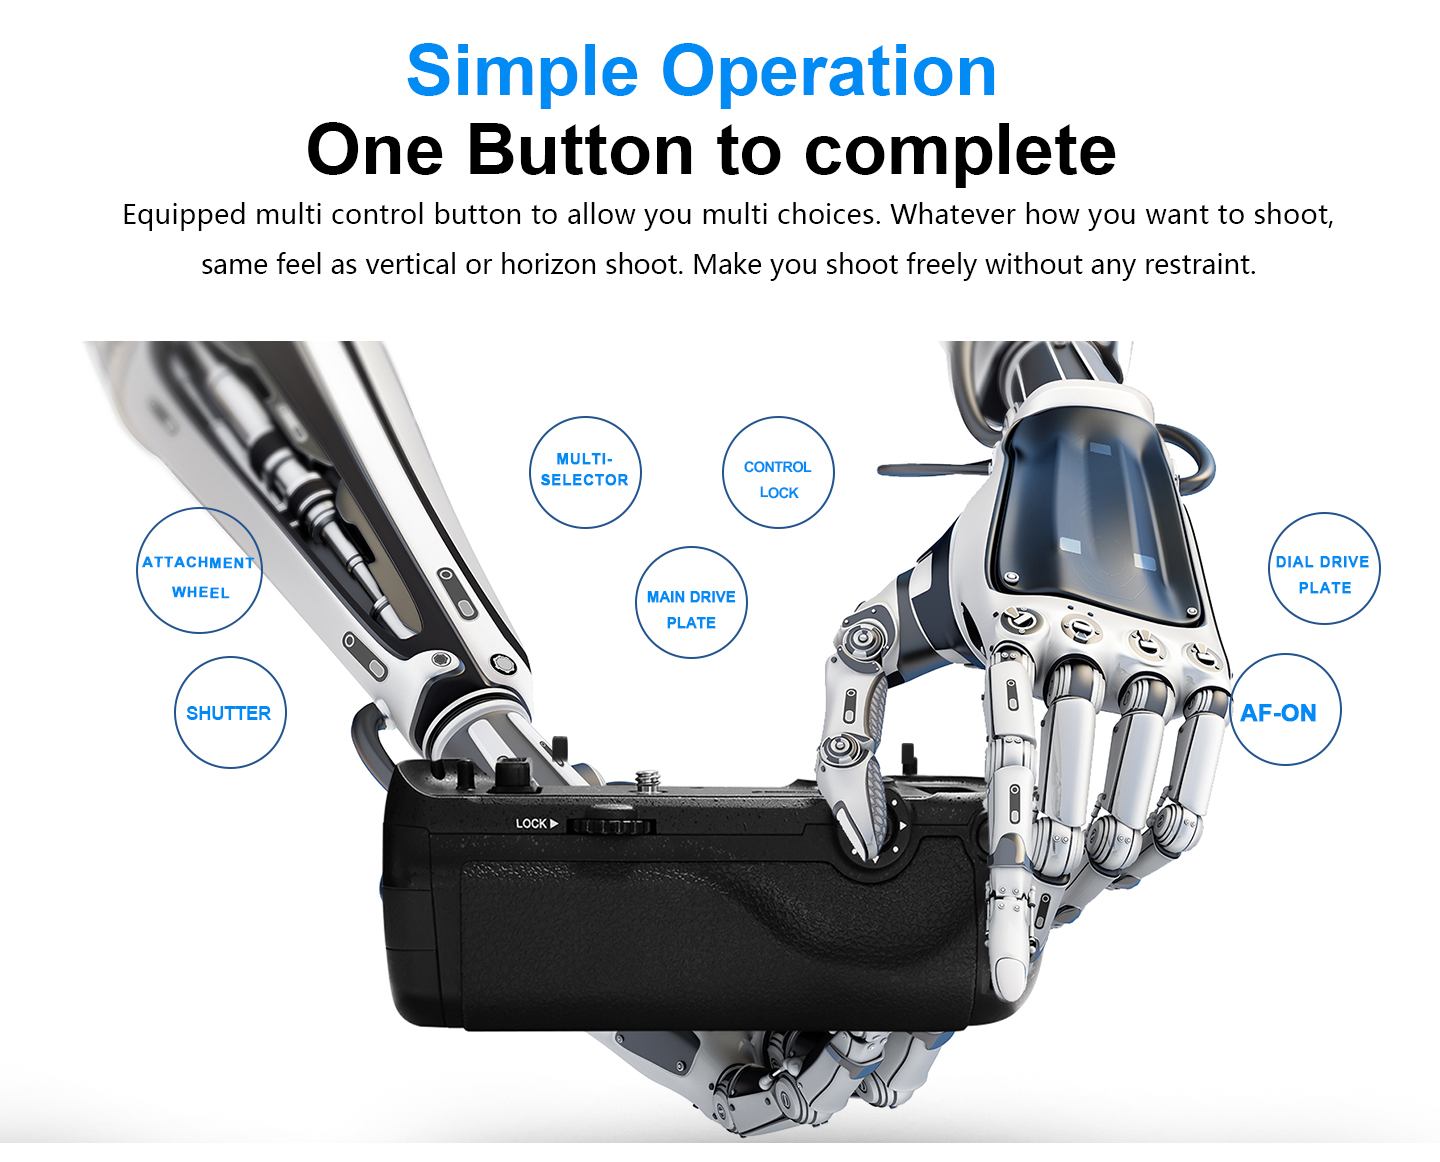 Simple Operation One Button to complete